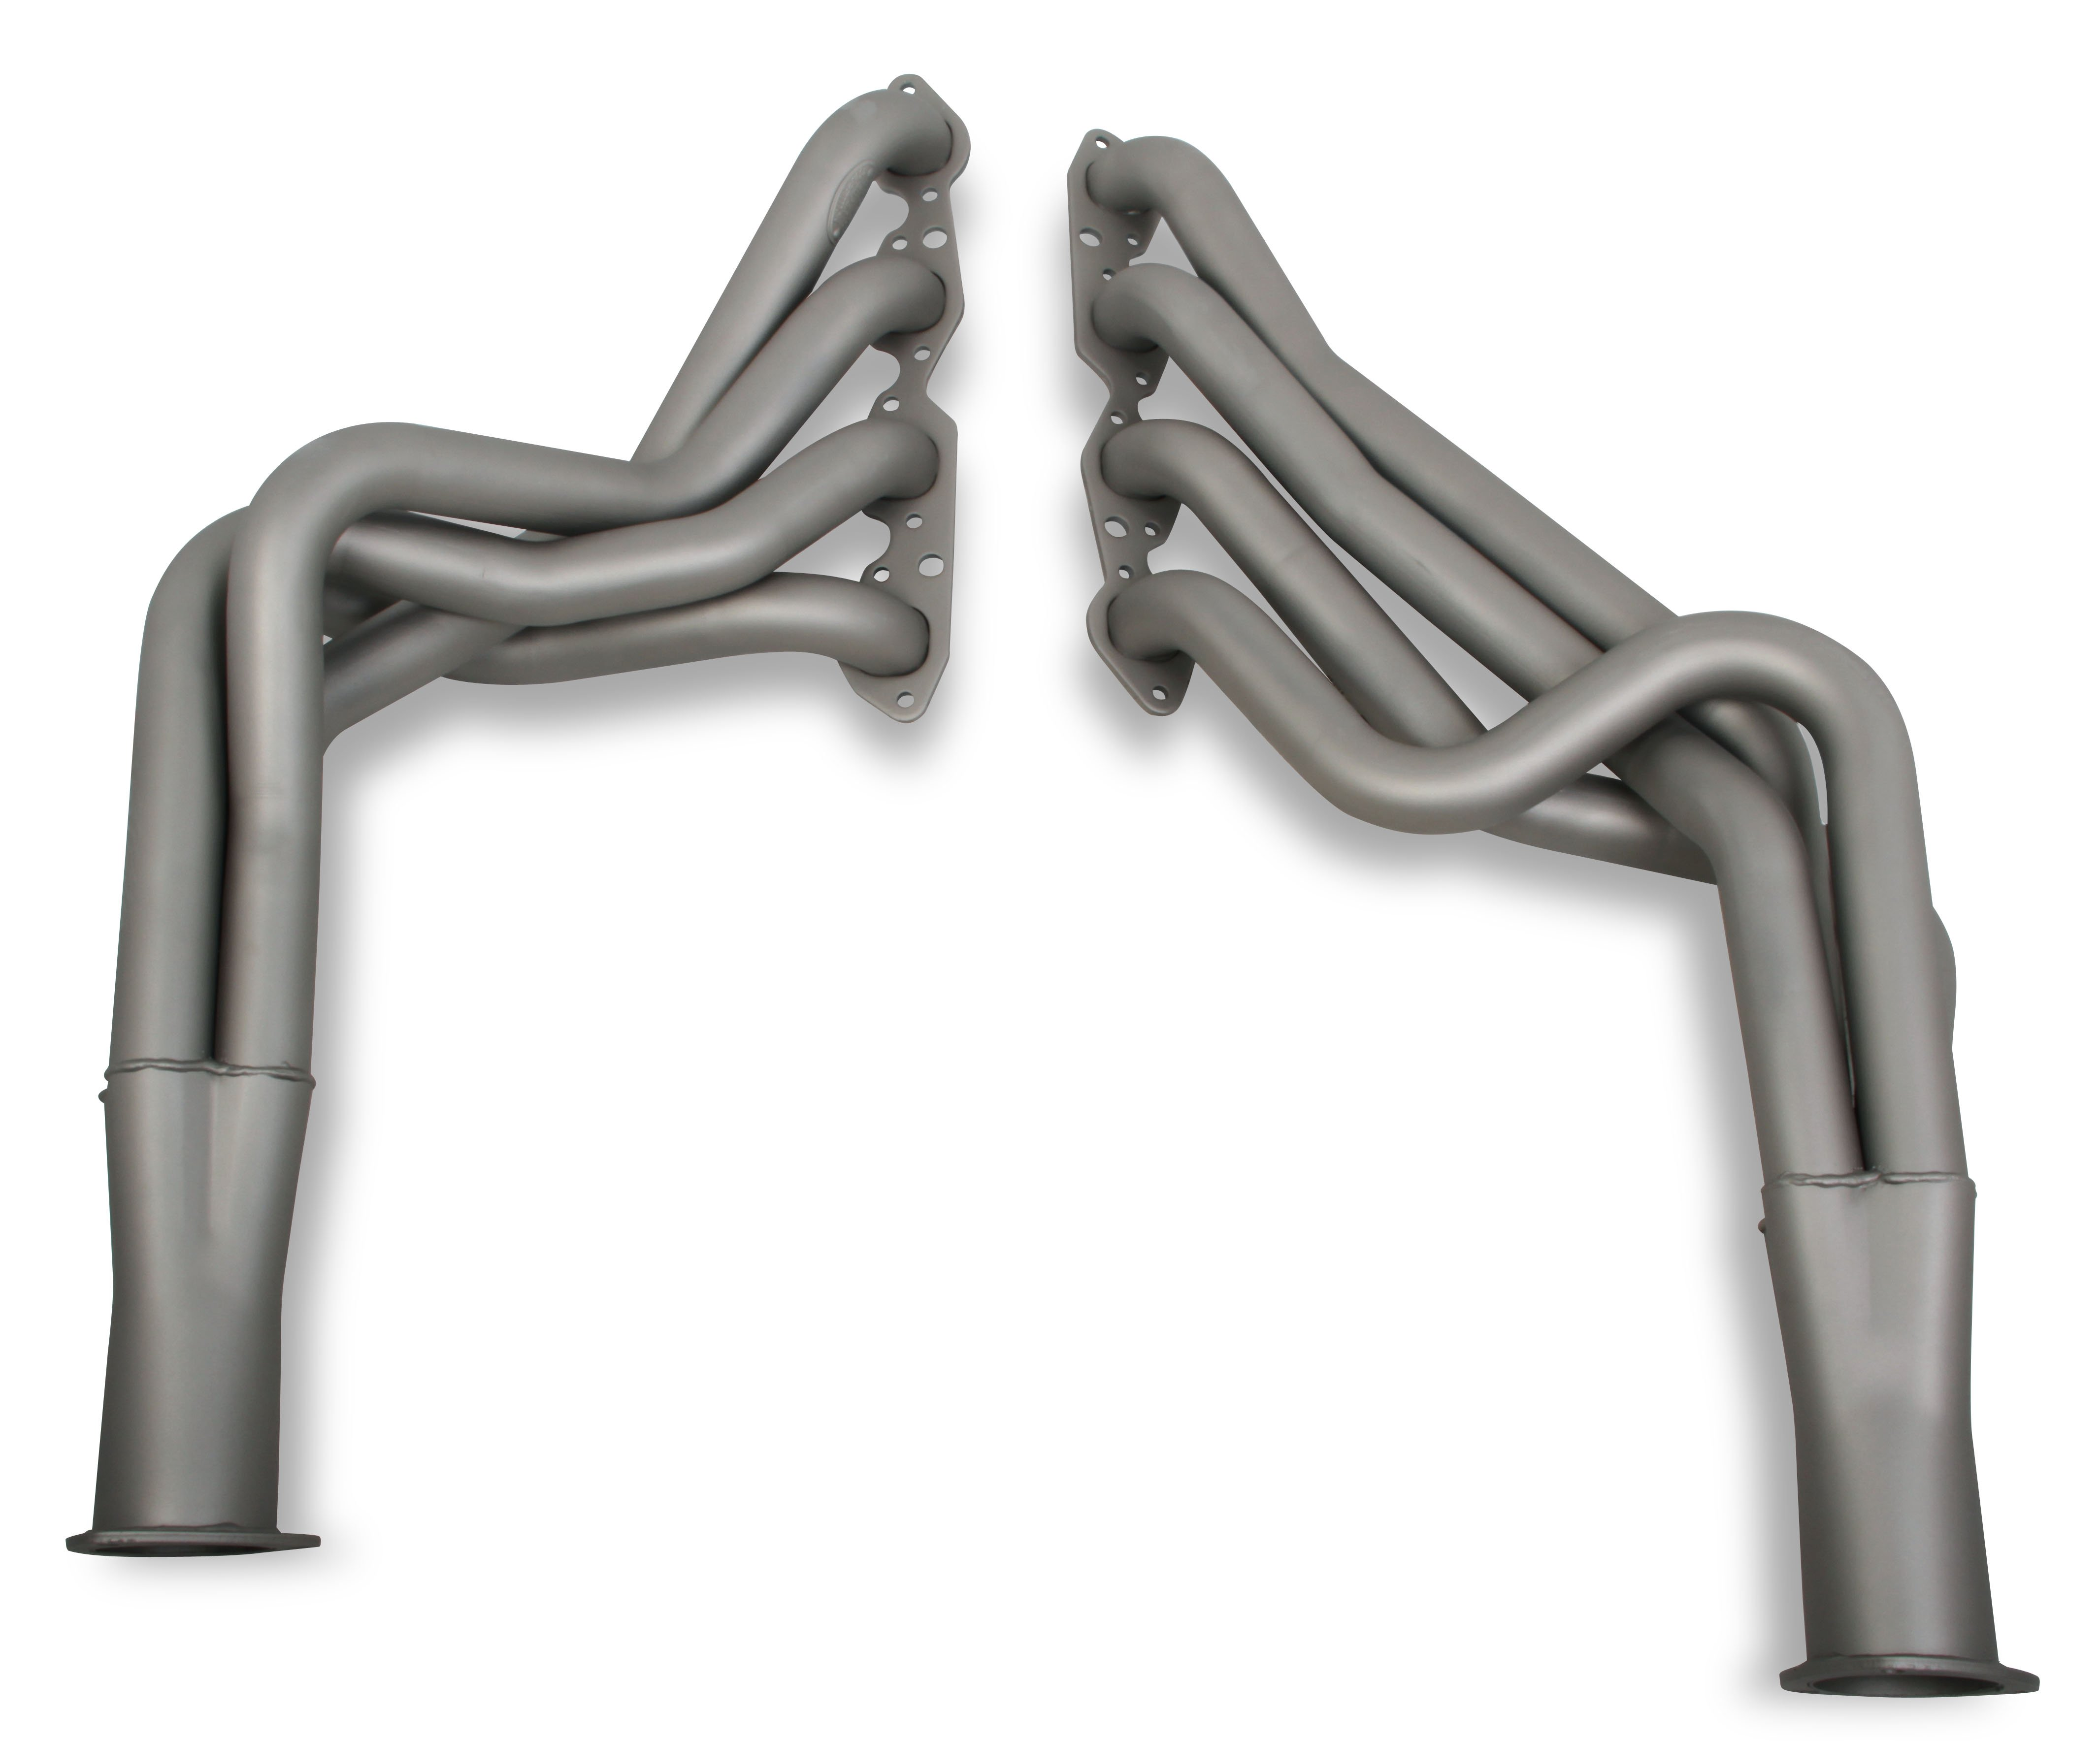 Header Ceramic Coating >> Hooker 2217 4hkr Hooker Super Competition Long Tube Header